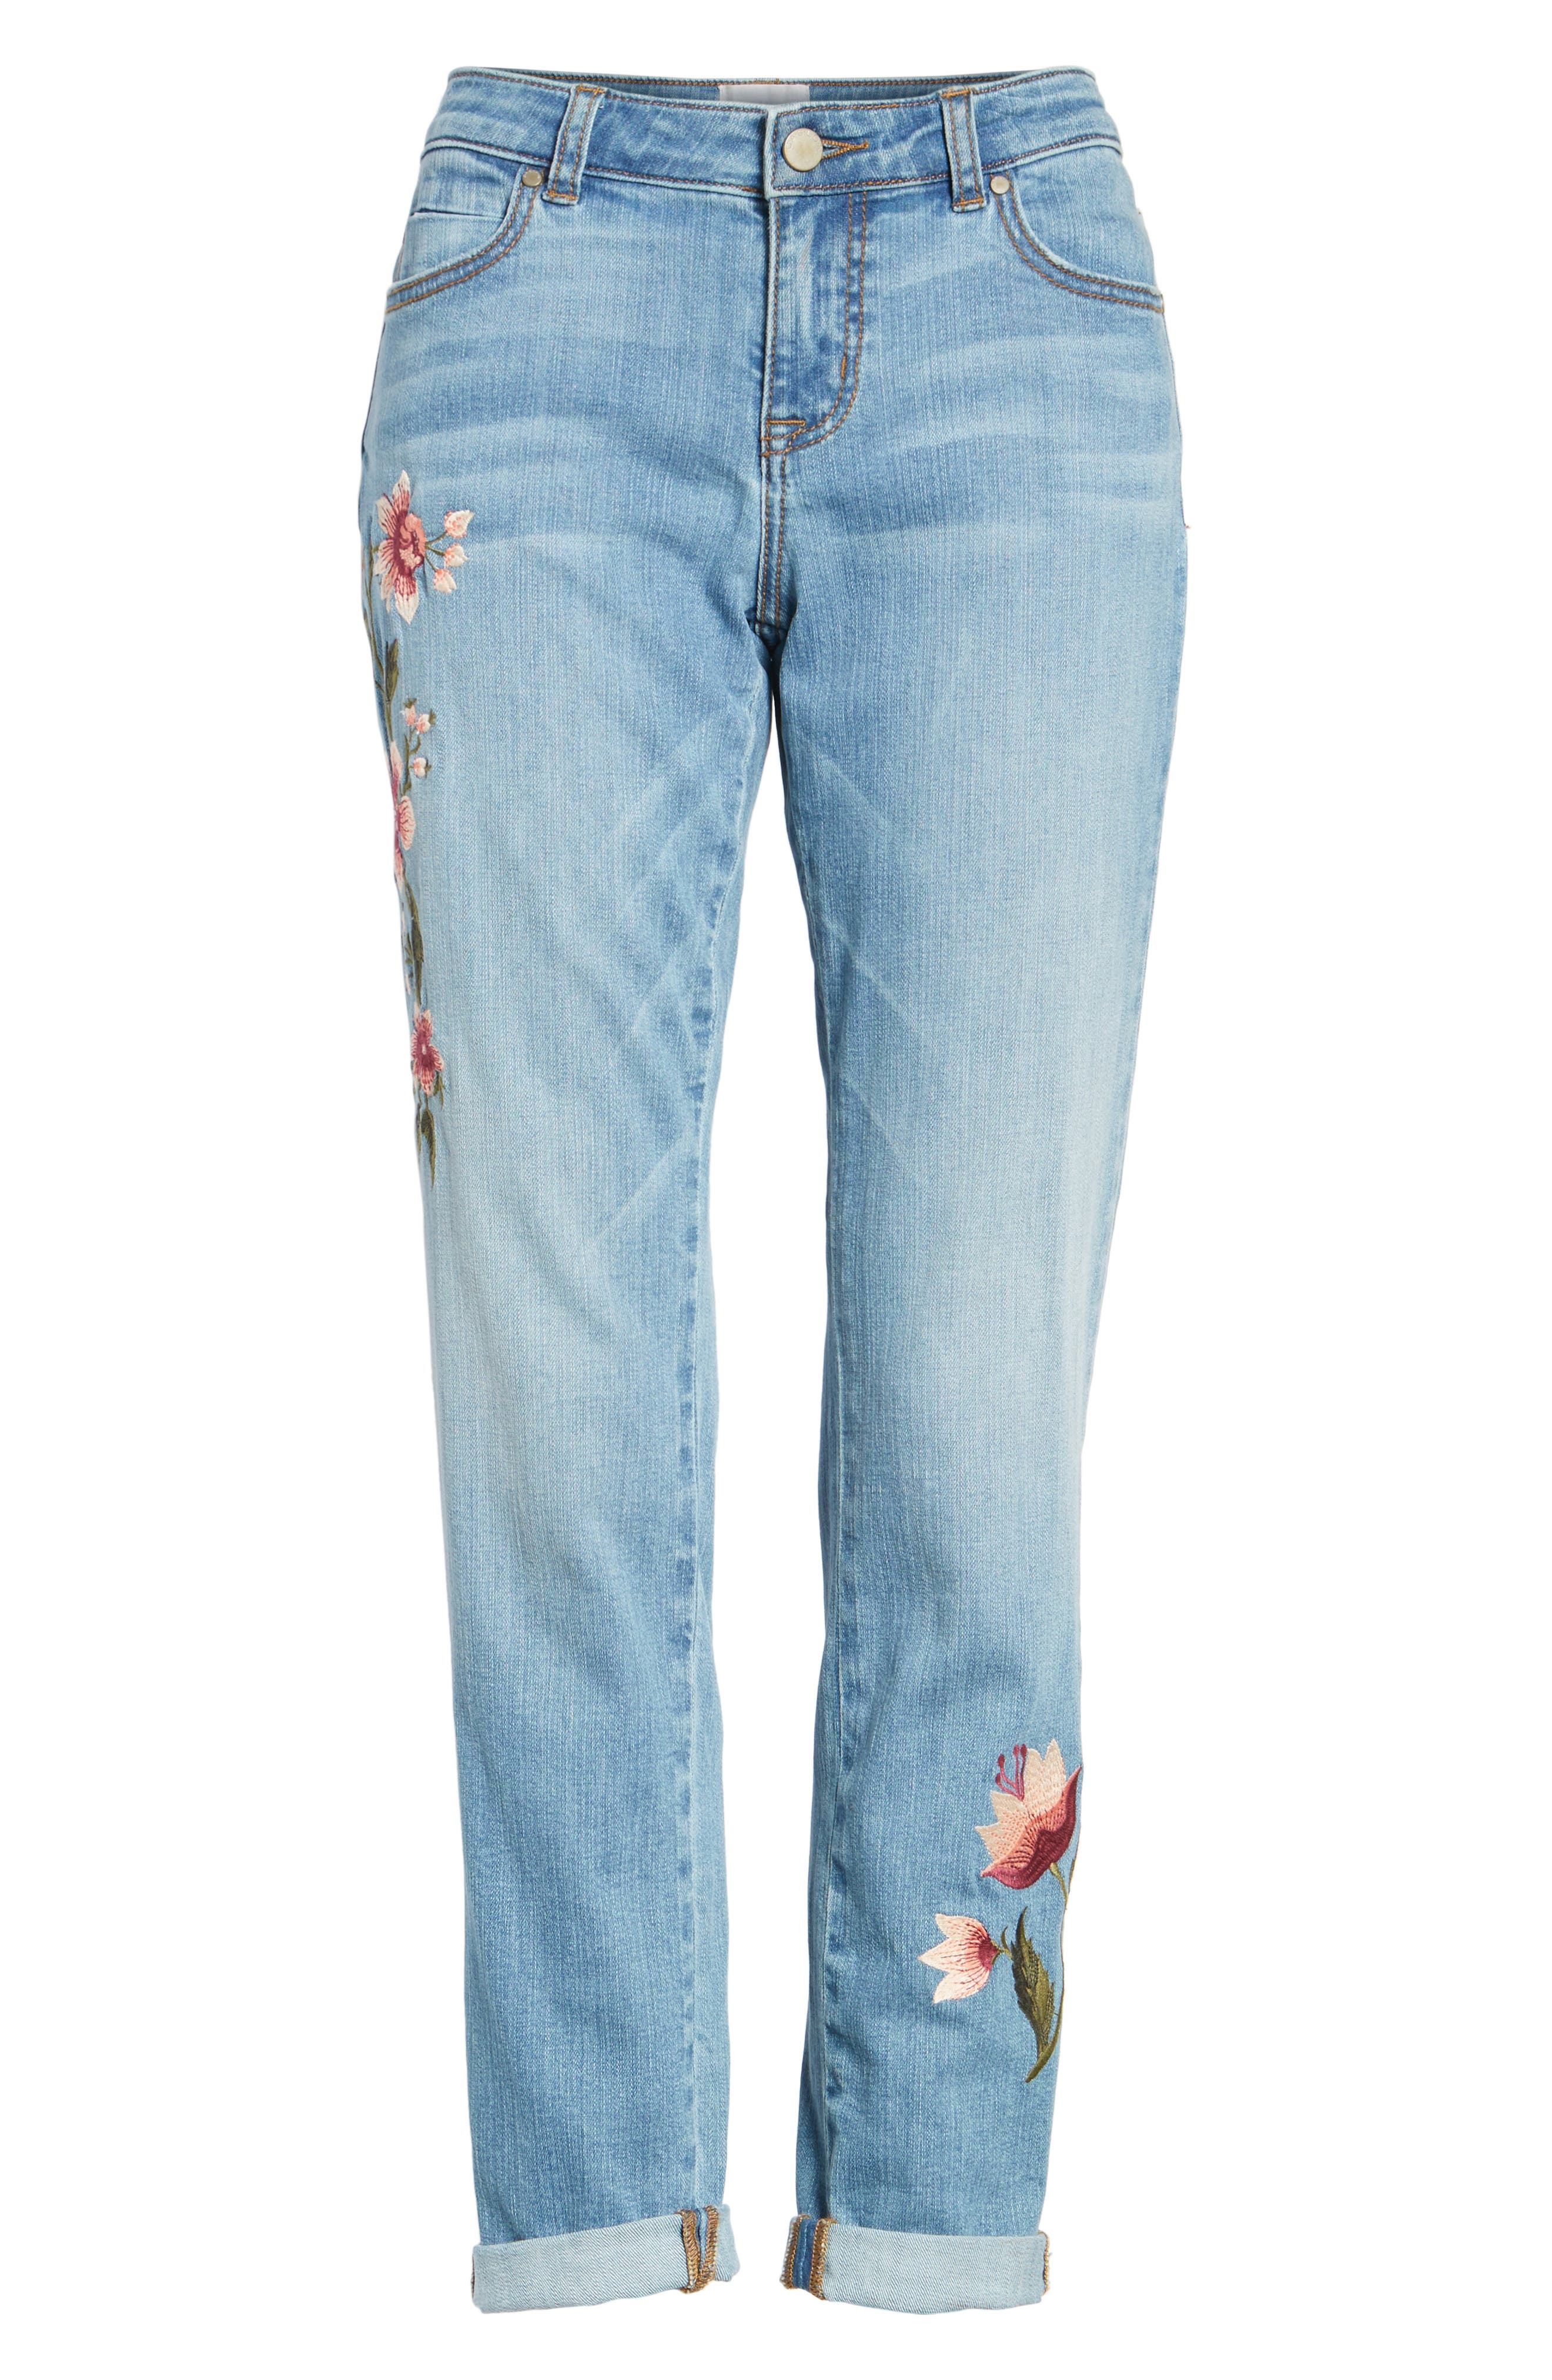 Embroidered Skinny Boyfriend Jeans,                             Alternate thumbnail 6, color,                             Blue Frontier